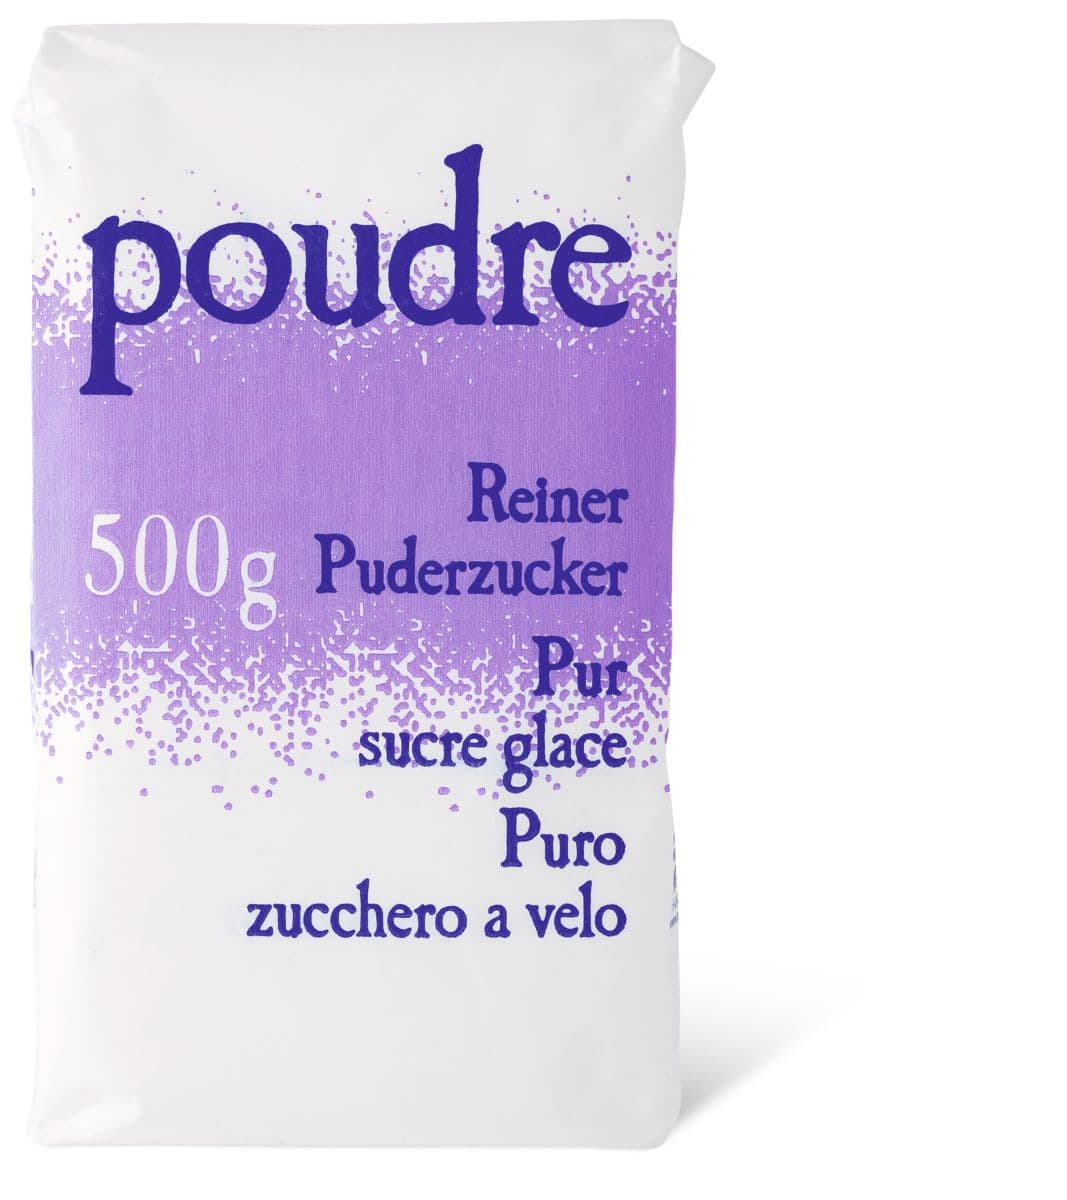 Pur sucre glace